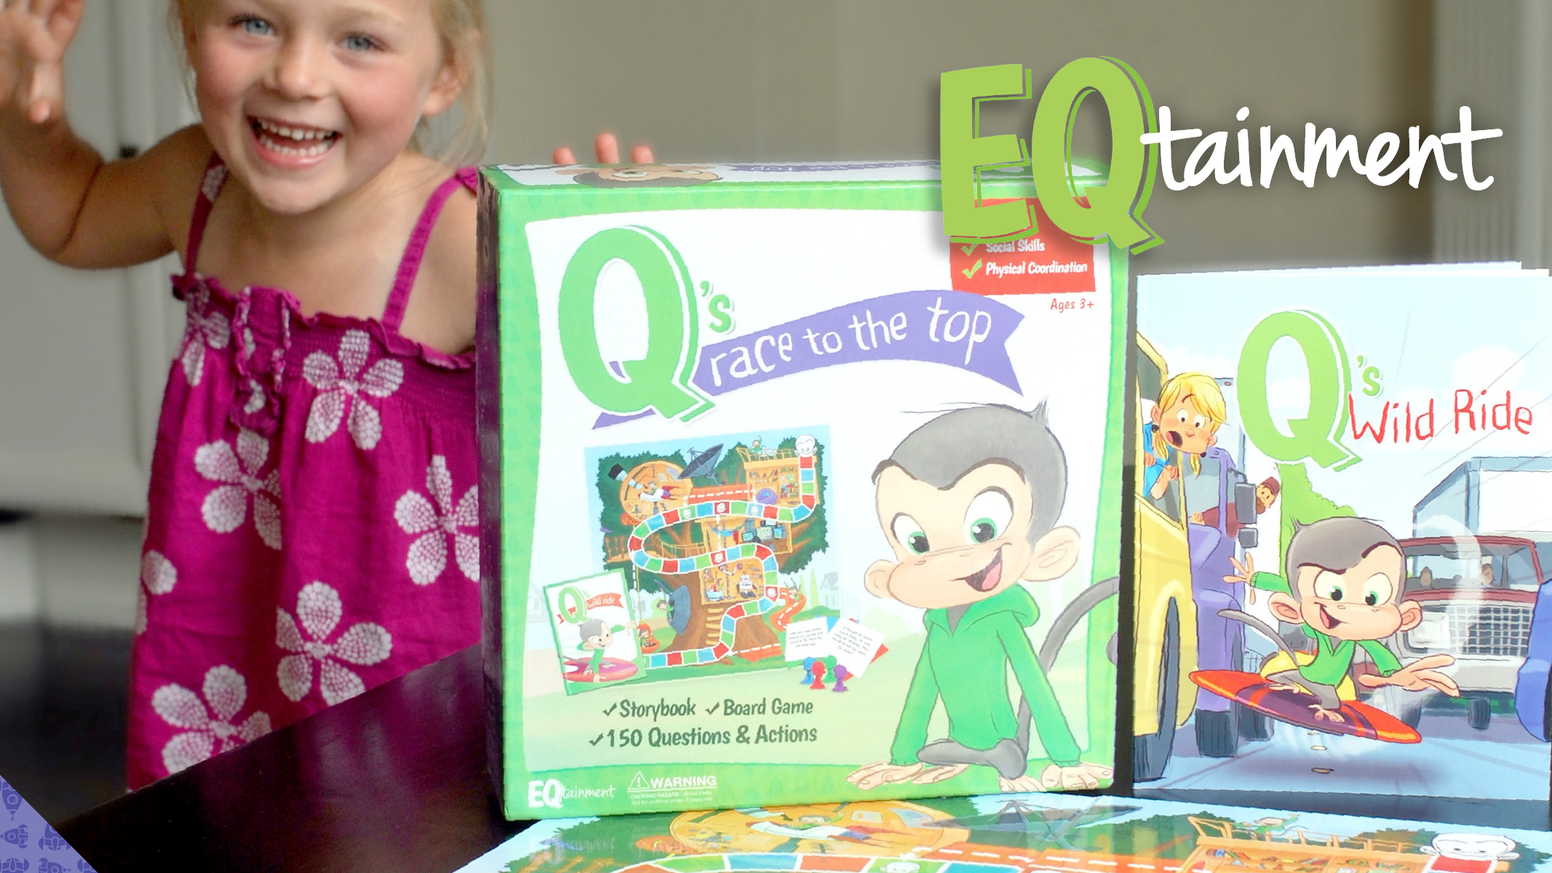 qs race to the top the eqtainment game storybook